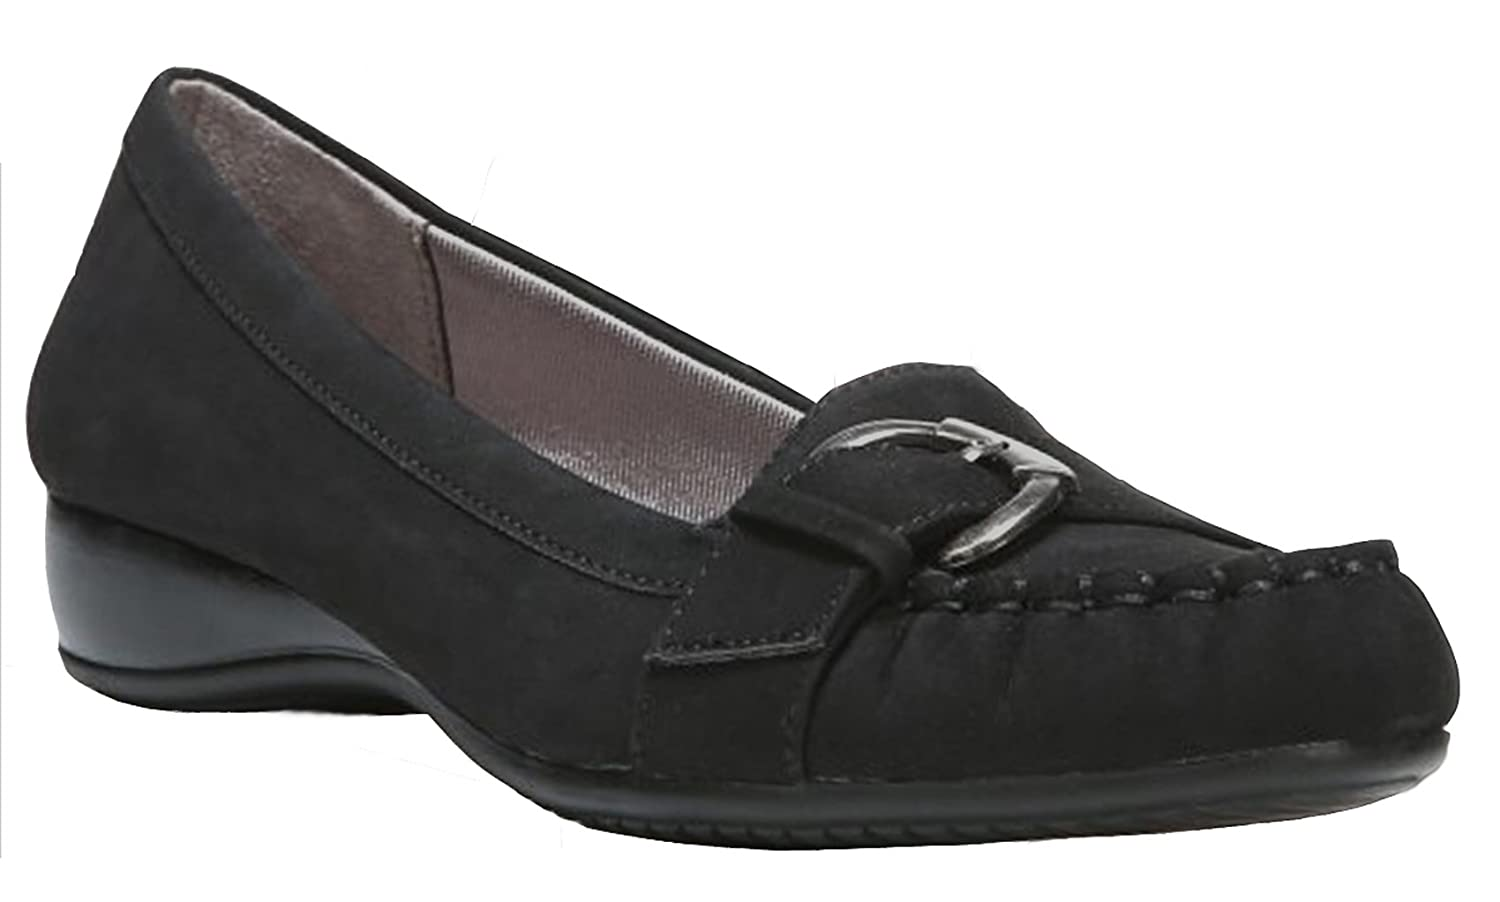 LifeStride Womens Dial-Up Loafers Shoes (8.5 B(M) US, Black Faux Suede)